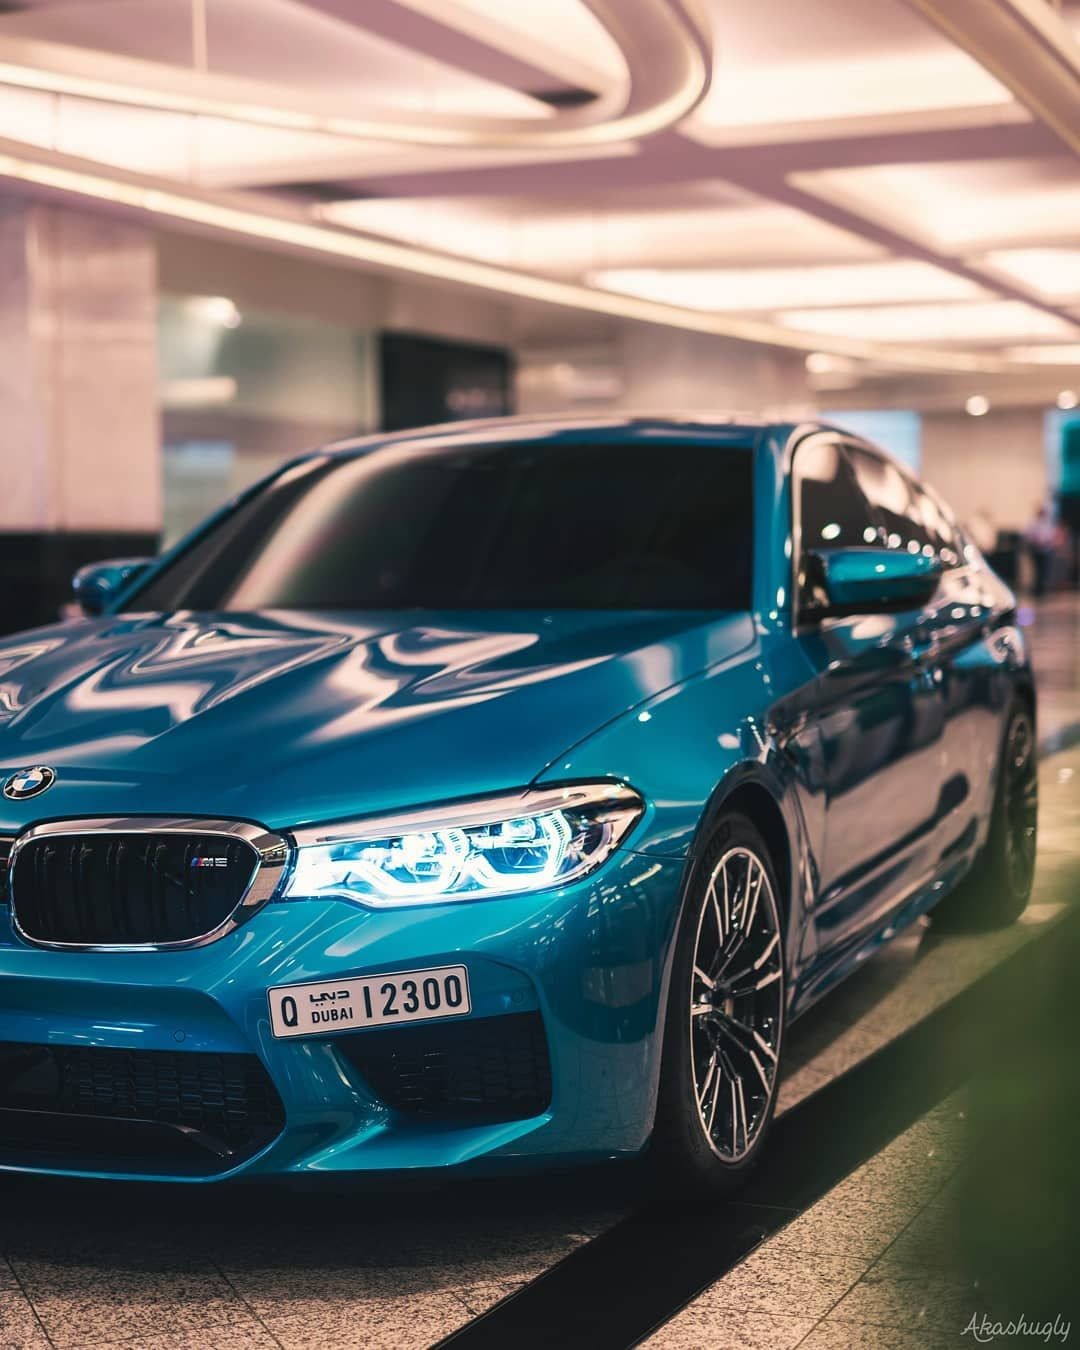 1 882 Likes 16 Comments Akash Kumar Akashugly On Instagram I Would Rock The New M5 No Doubt Angle Stolen From Raiesimam Bmw Super Luxury Cars Bmw M5